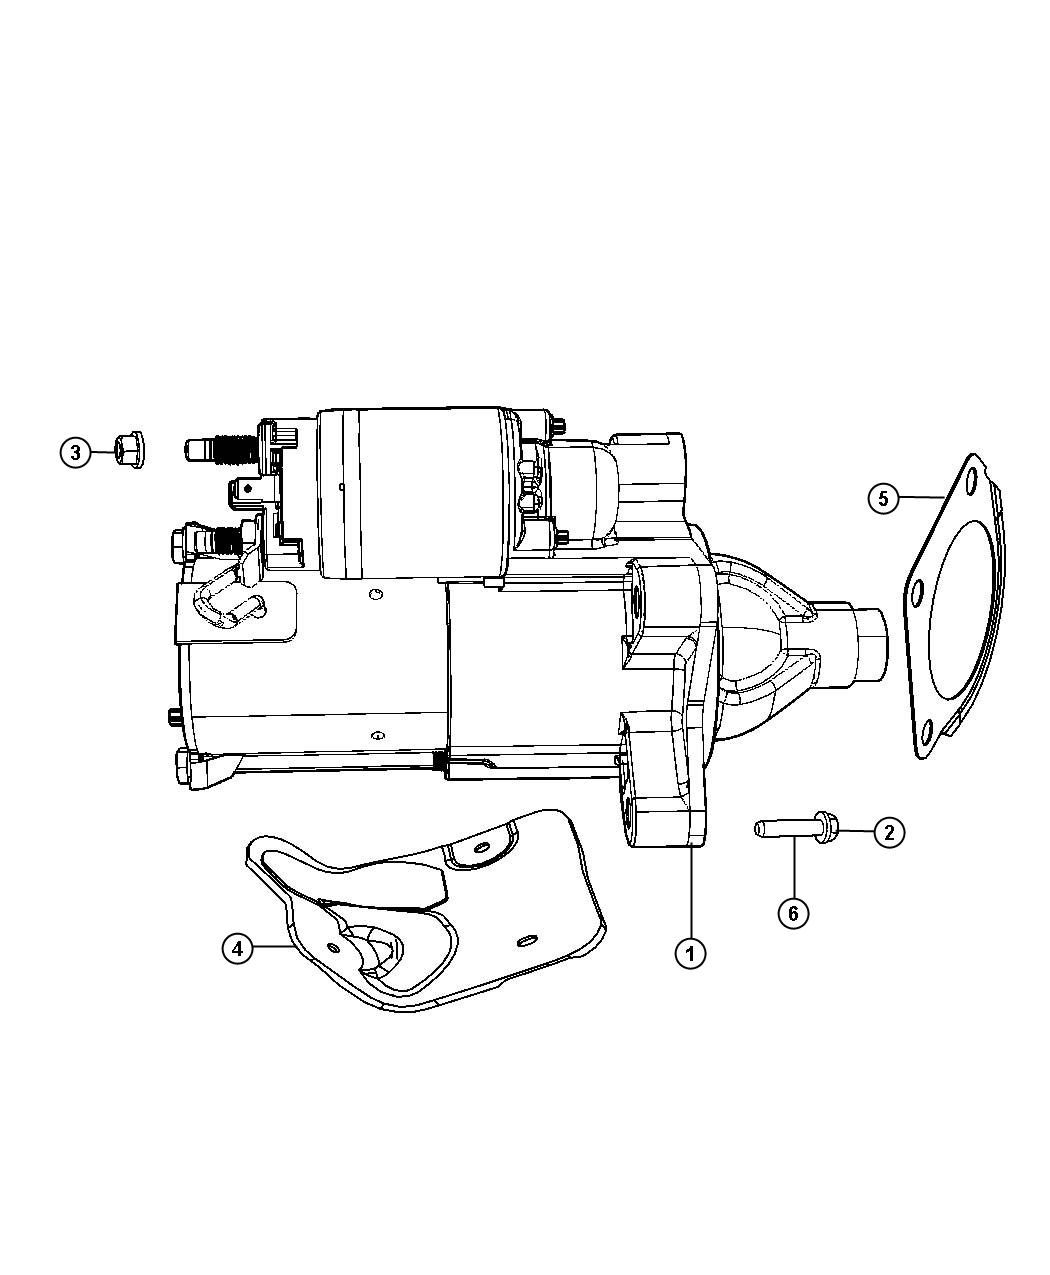 Jeep Wrangler Starter Engine Remanufactured